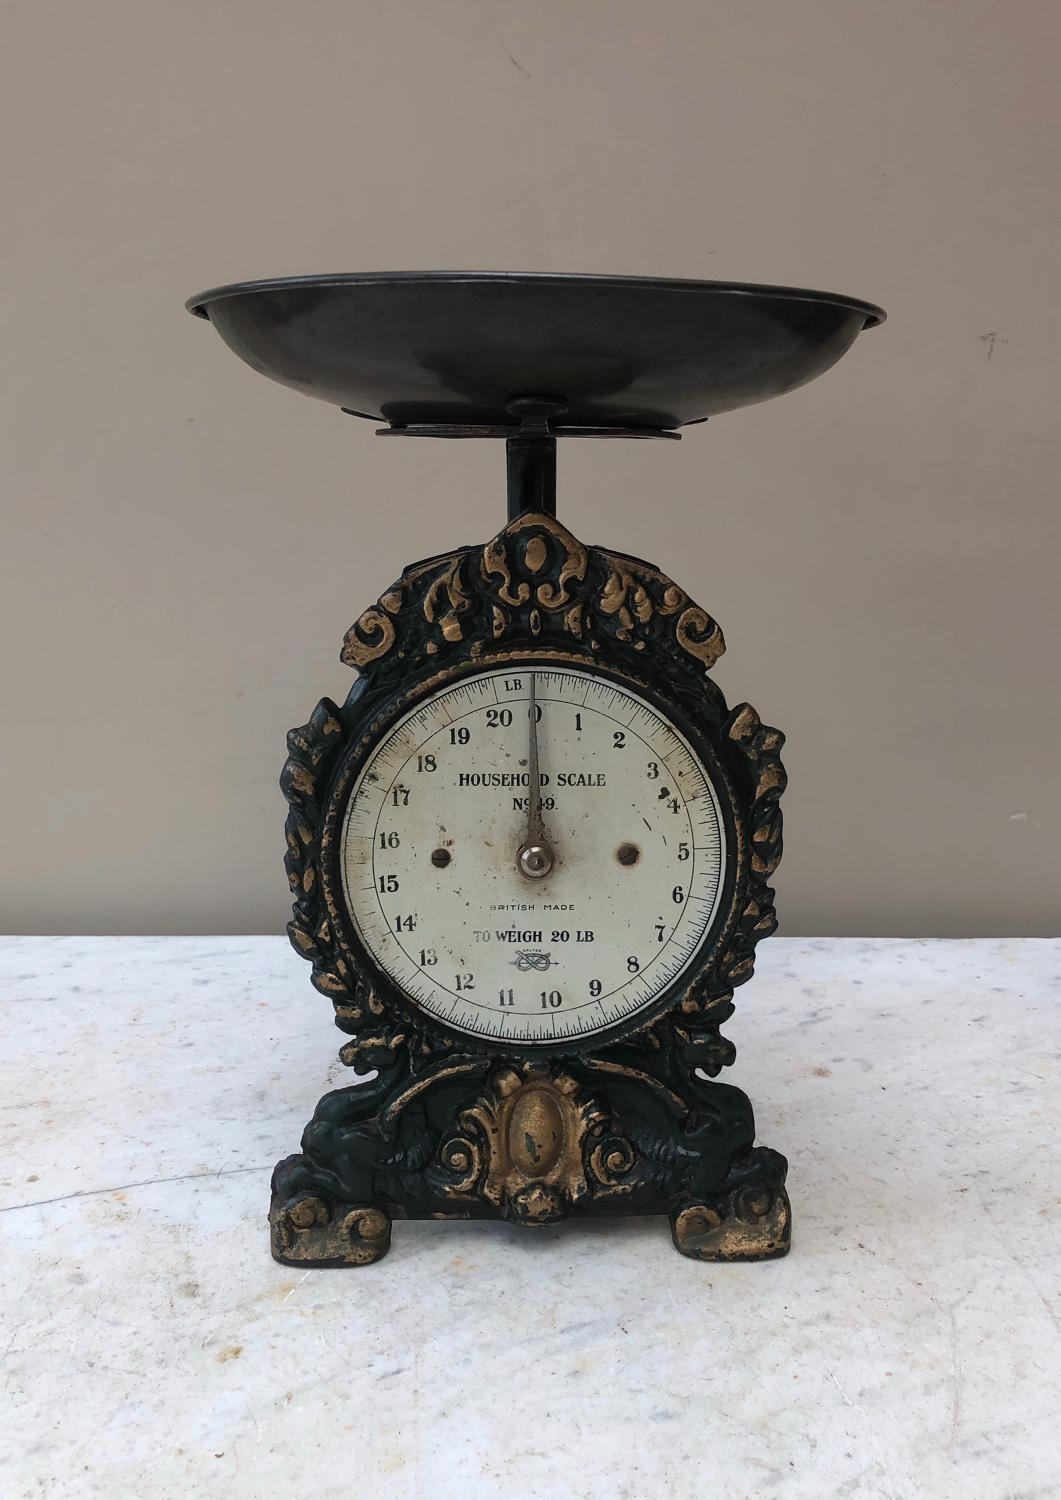 Edwardian Cast Iron Household Scales - To 20lb